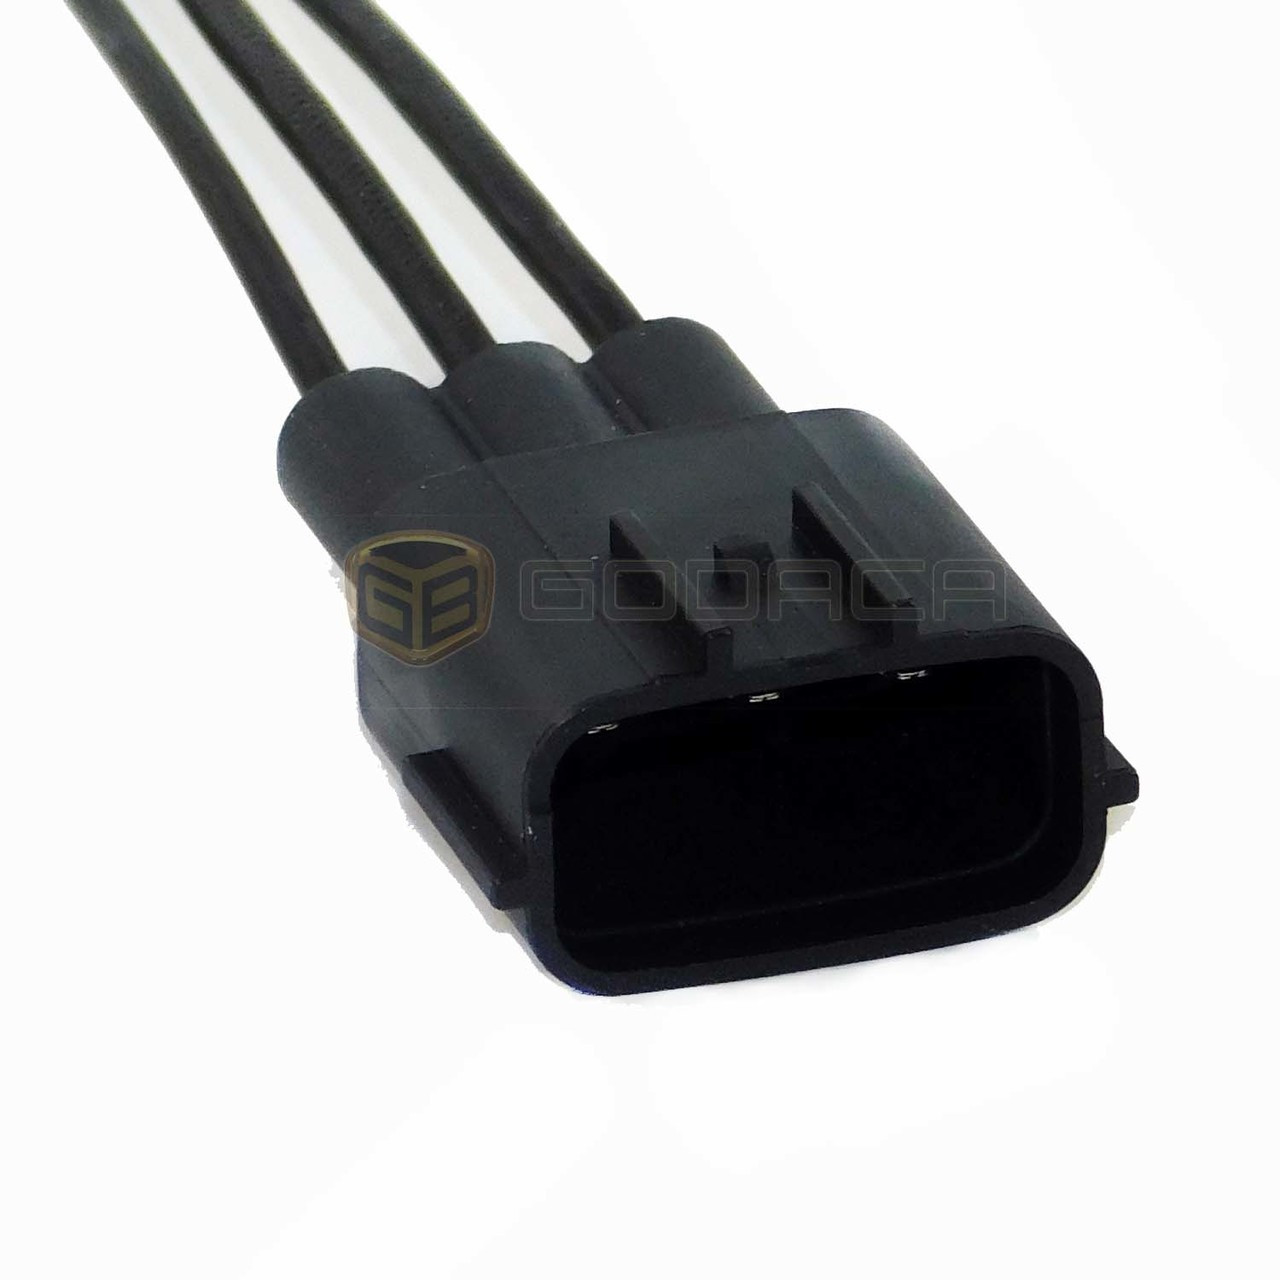 1x male connector for mazda nissan 3